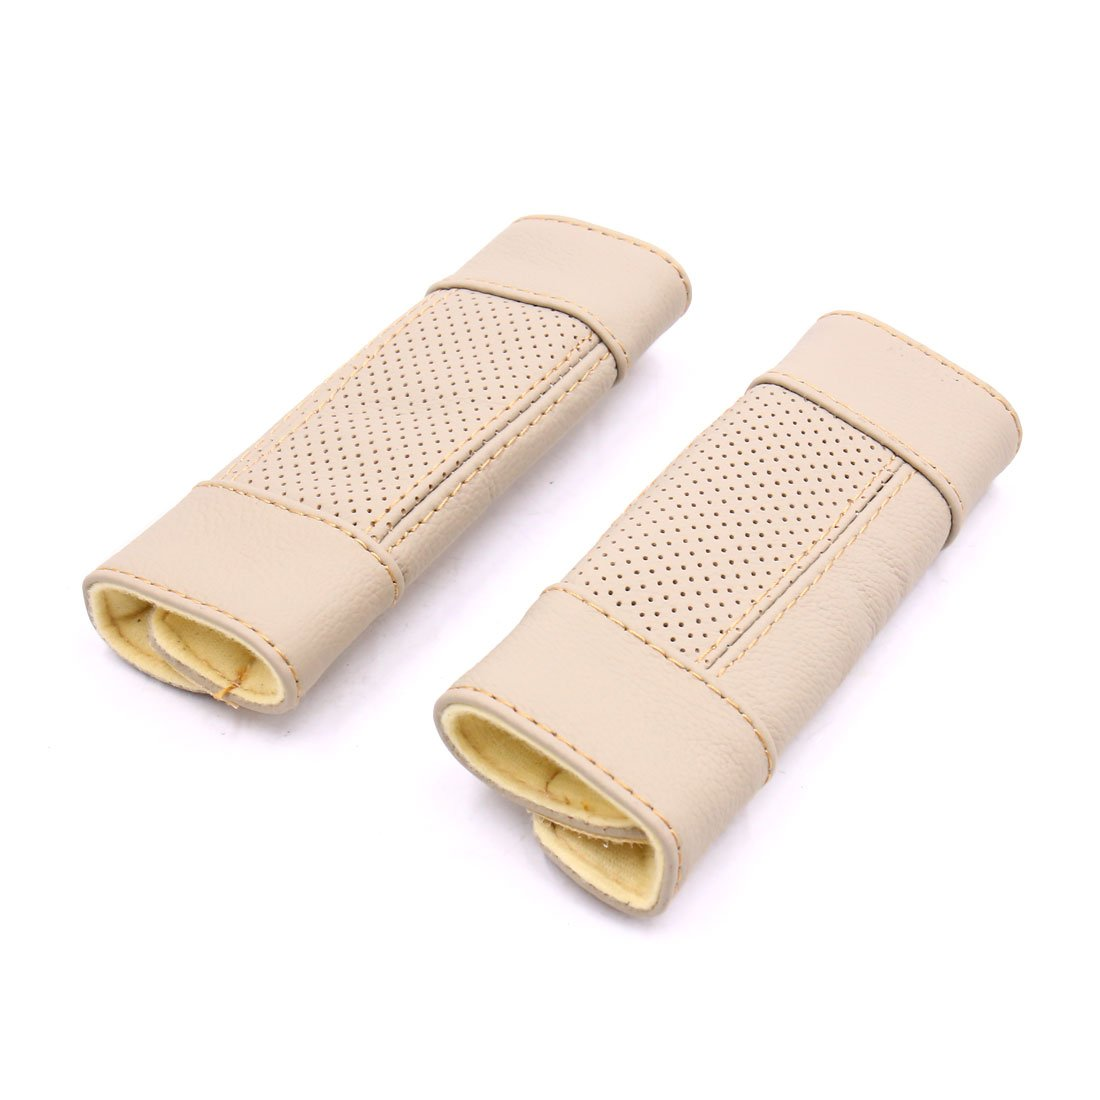 sourcingmap 2pcs Faux Leather Car Hand Brake Lever Protective Sleeve Cover Beige a17061900ux1542